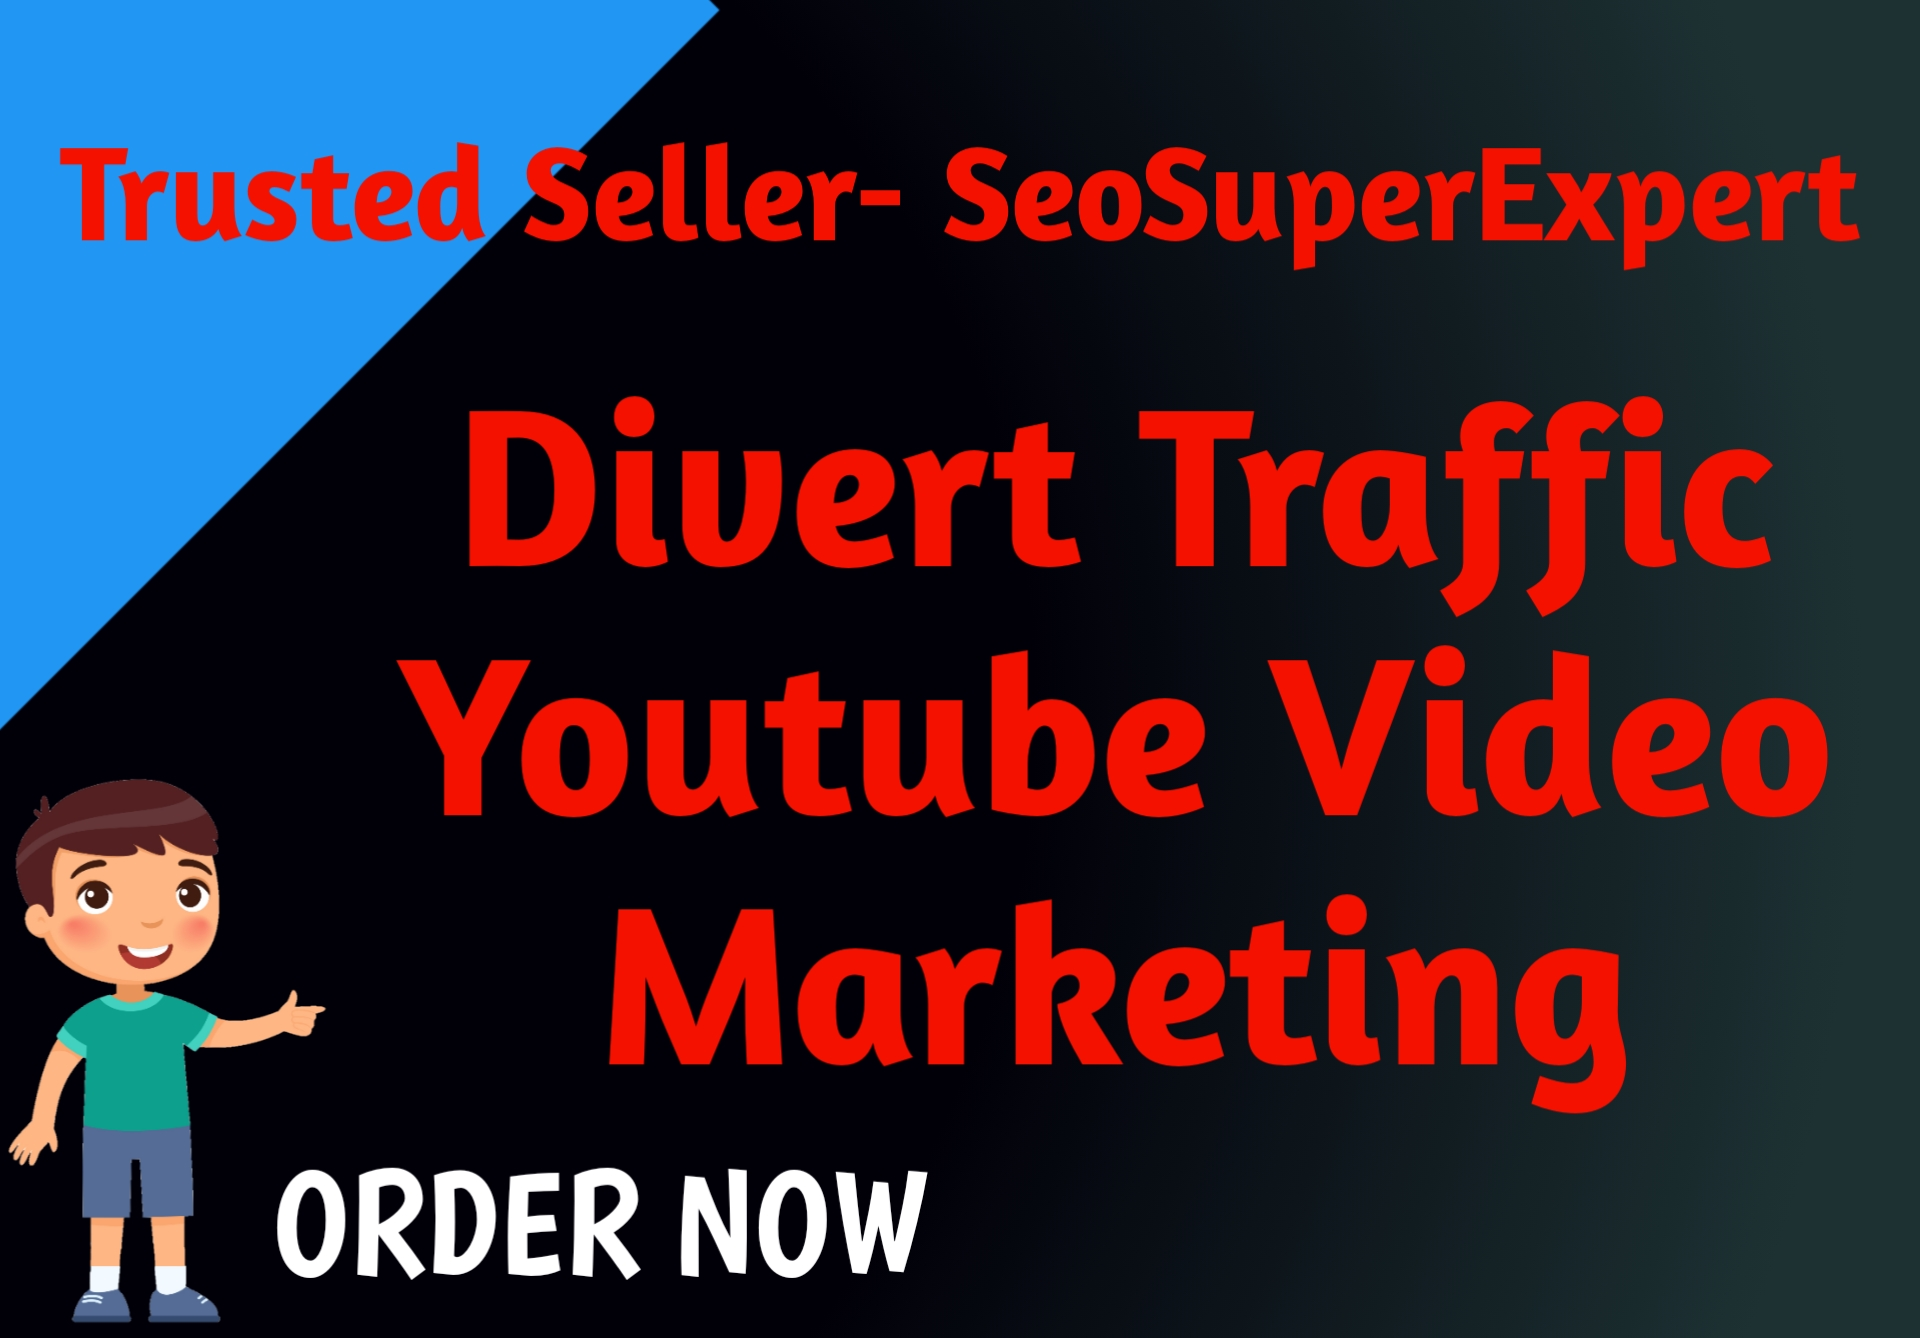 Divert Traffic For Youtube Video Promotion Marketing